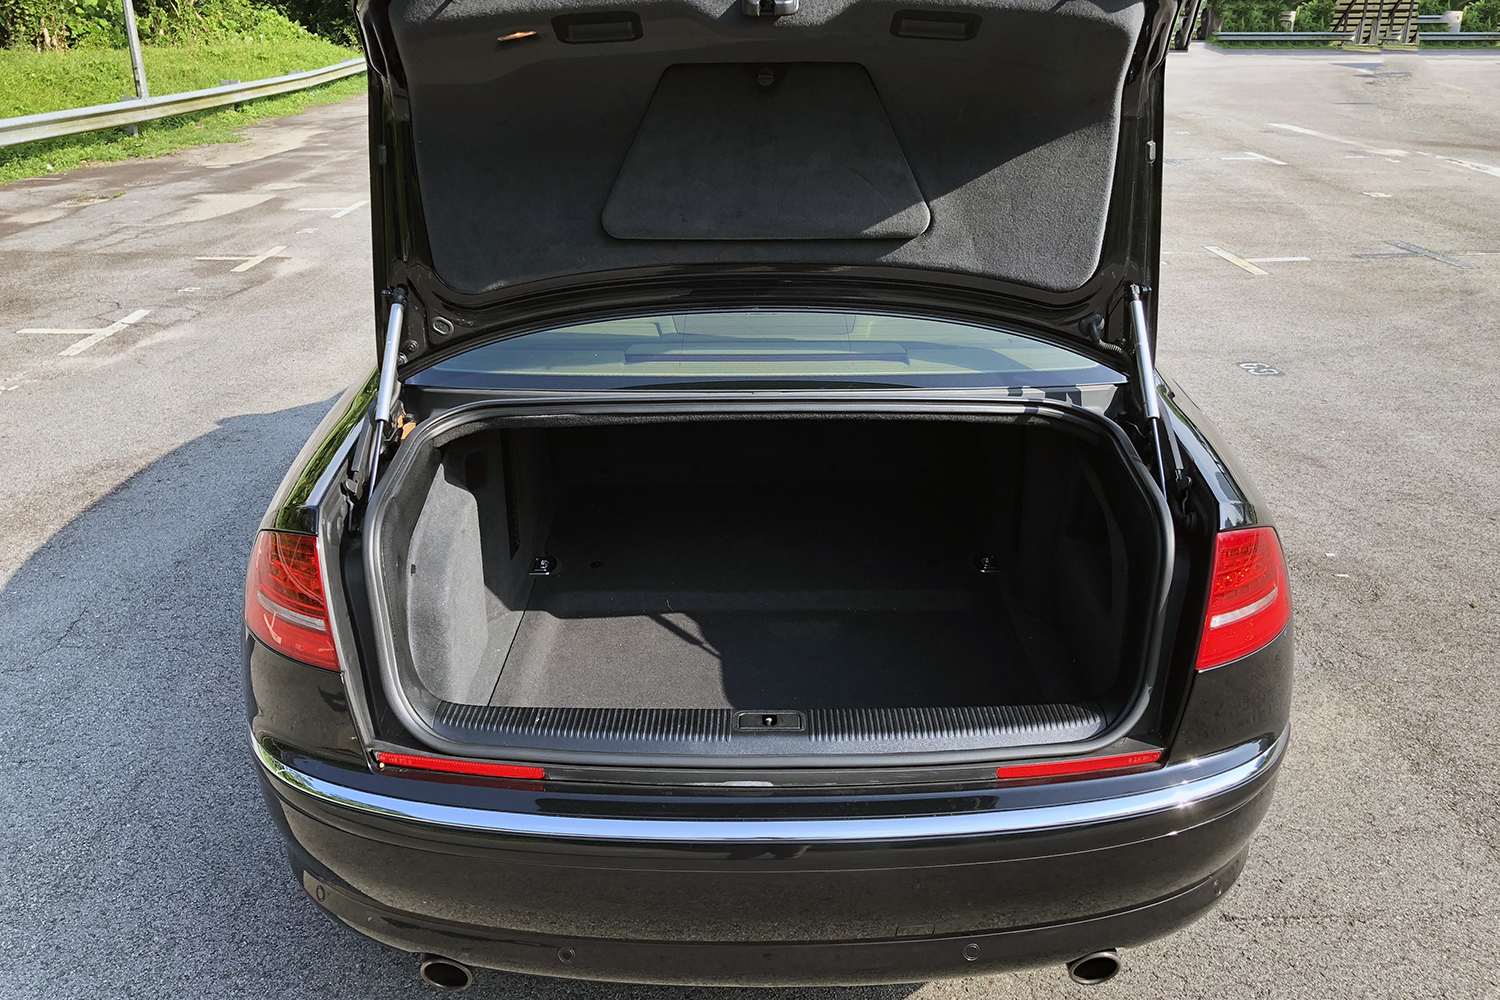 Audi A8 rear boot view